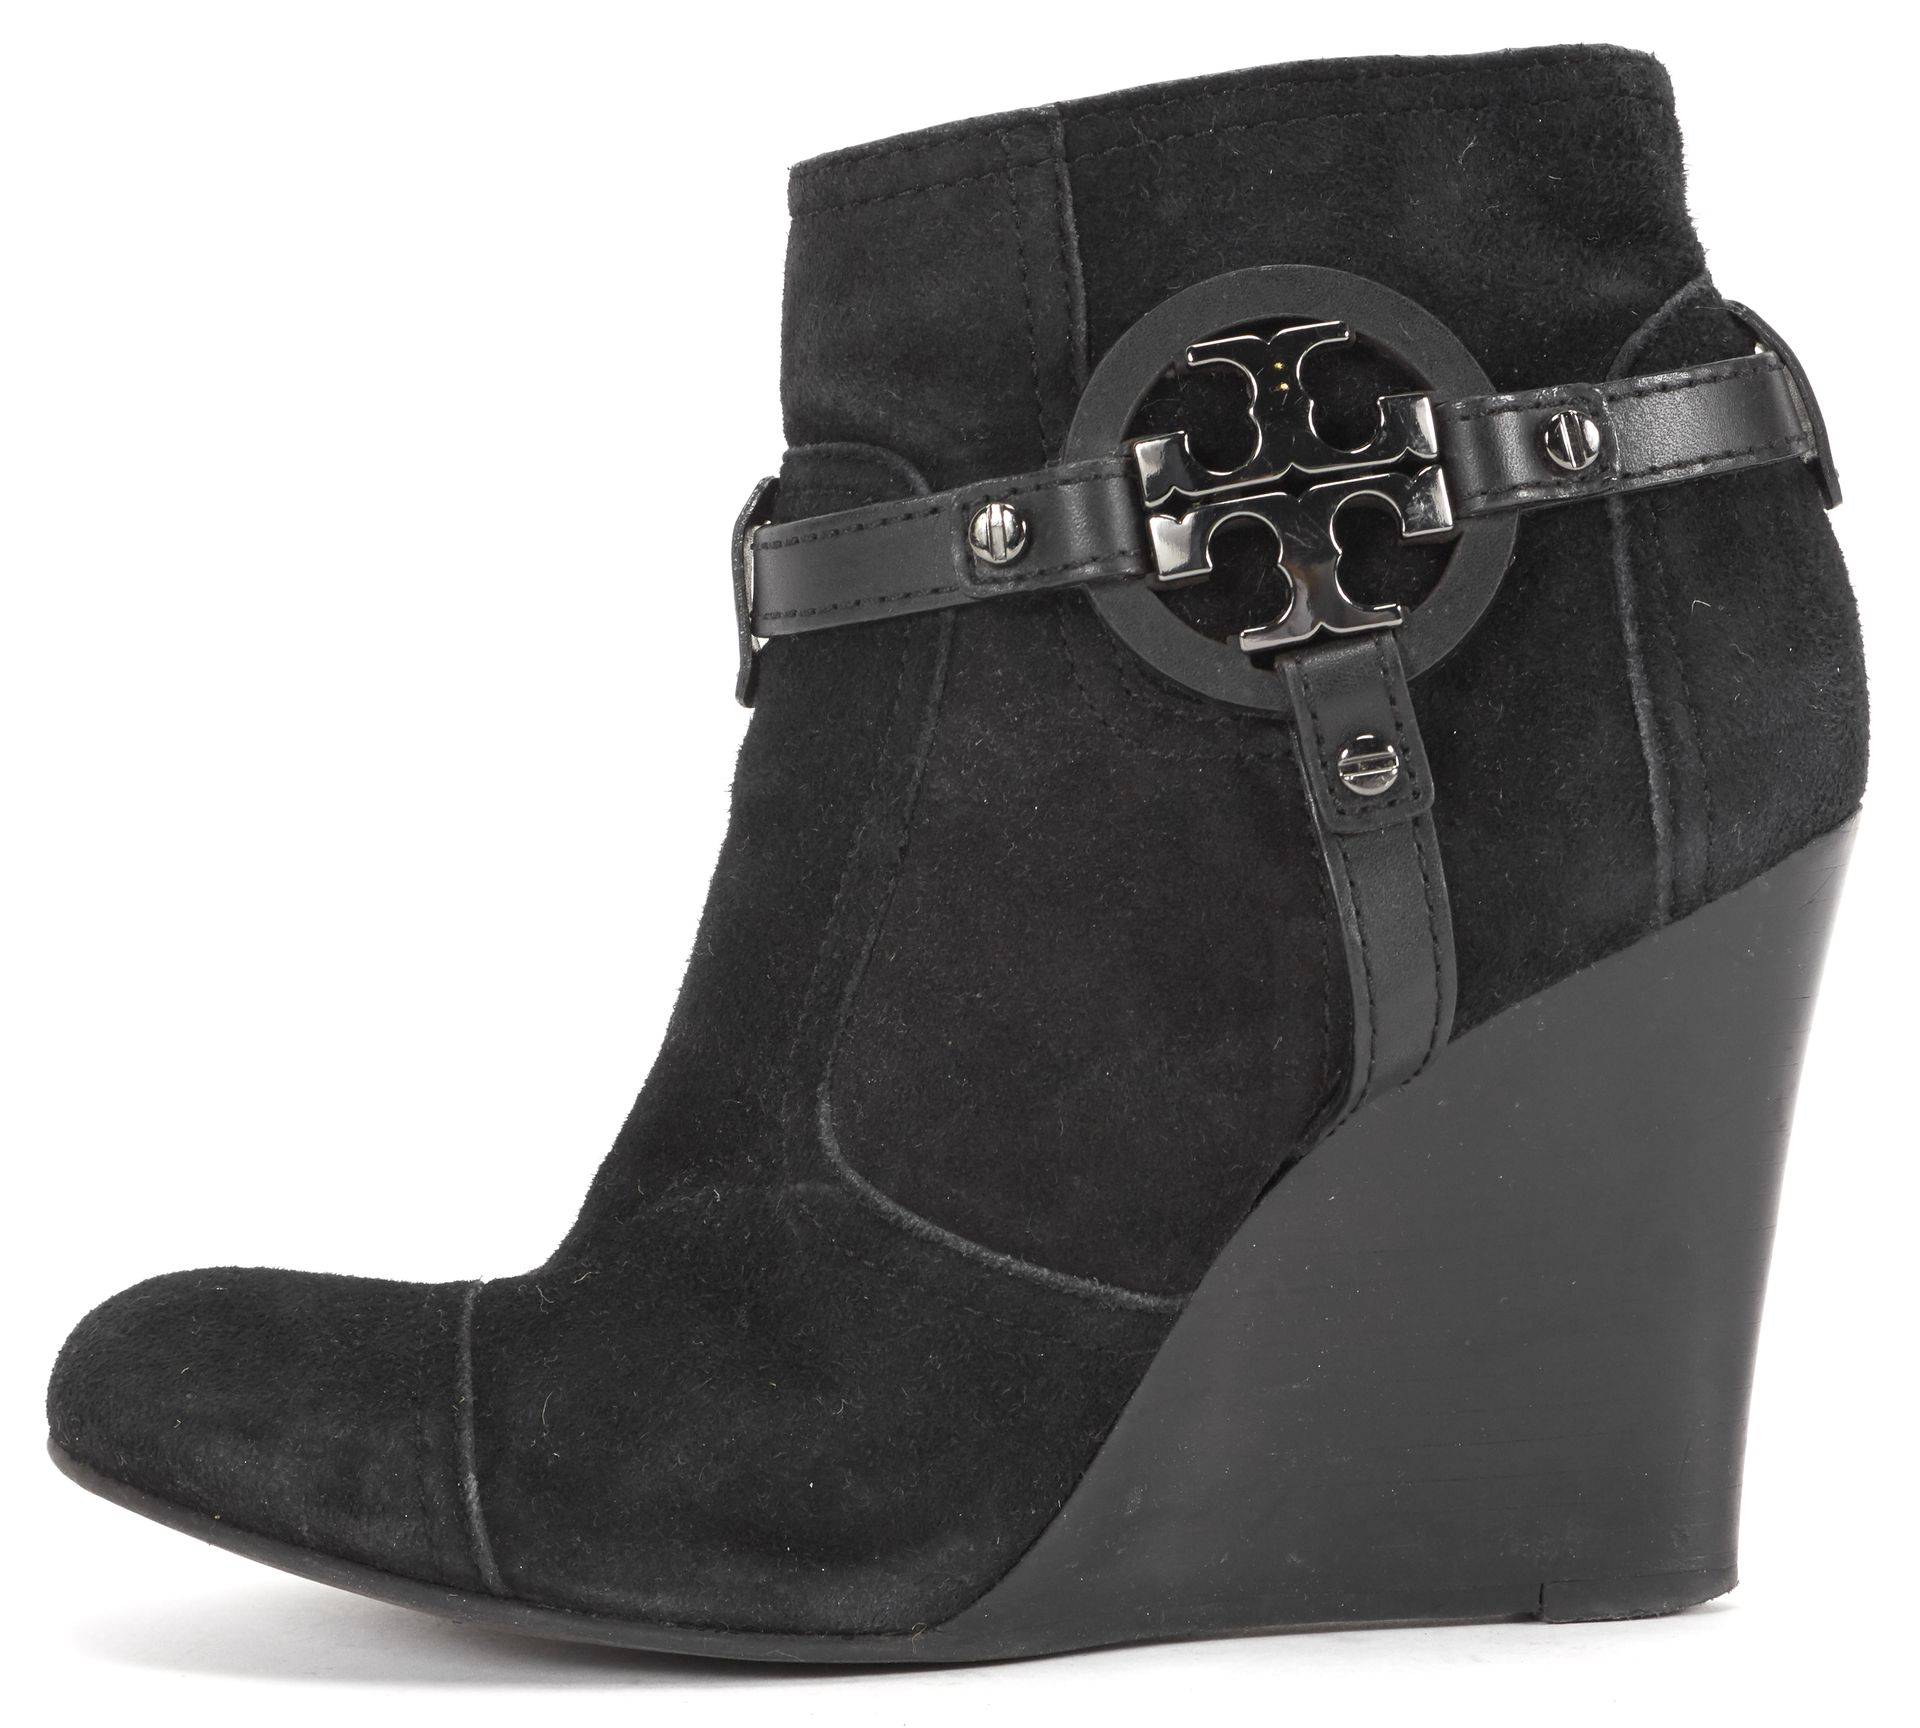 Tory Burch Black Suede Leather Logo Wedge Ankle Boot Heels ...